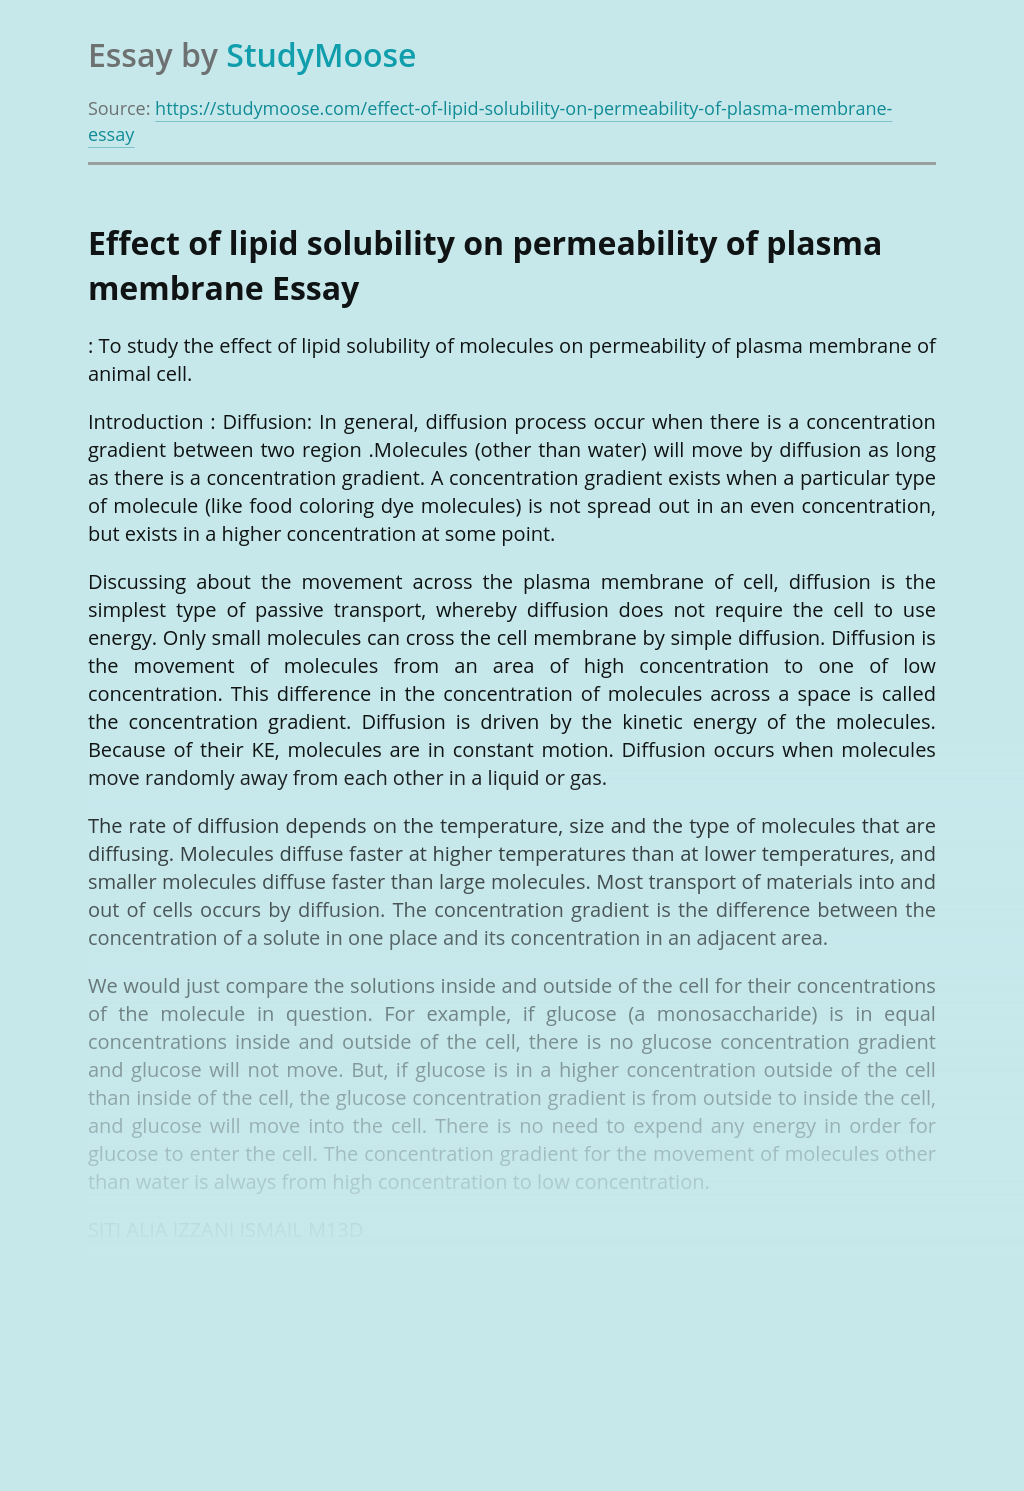 Effect of lipid solubility on permeability of plasma membrane